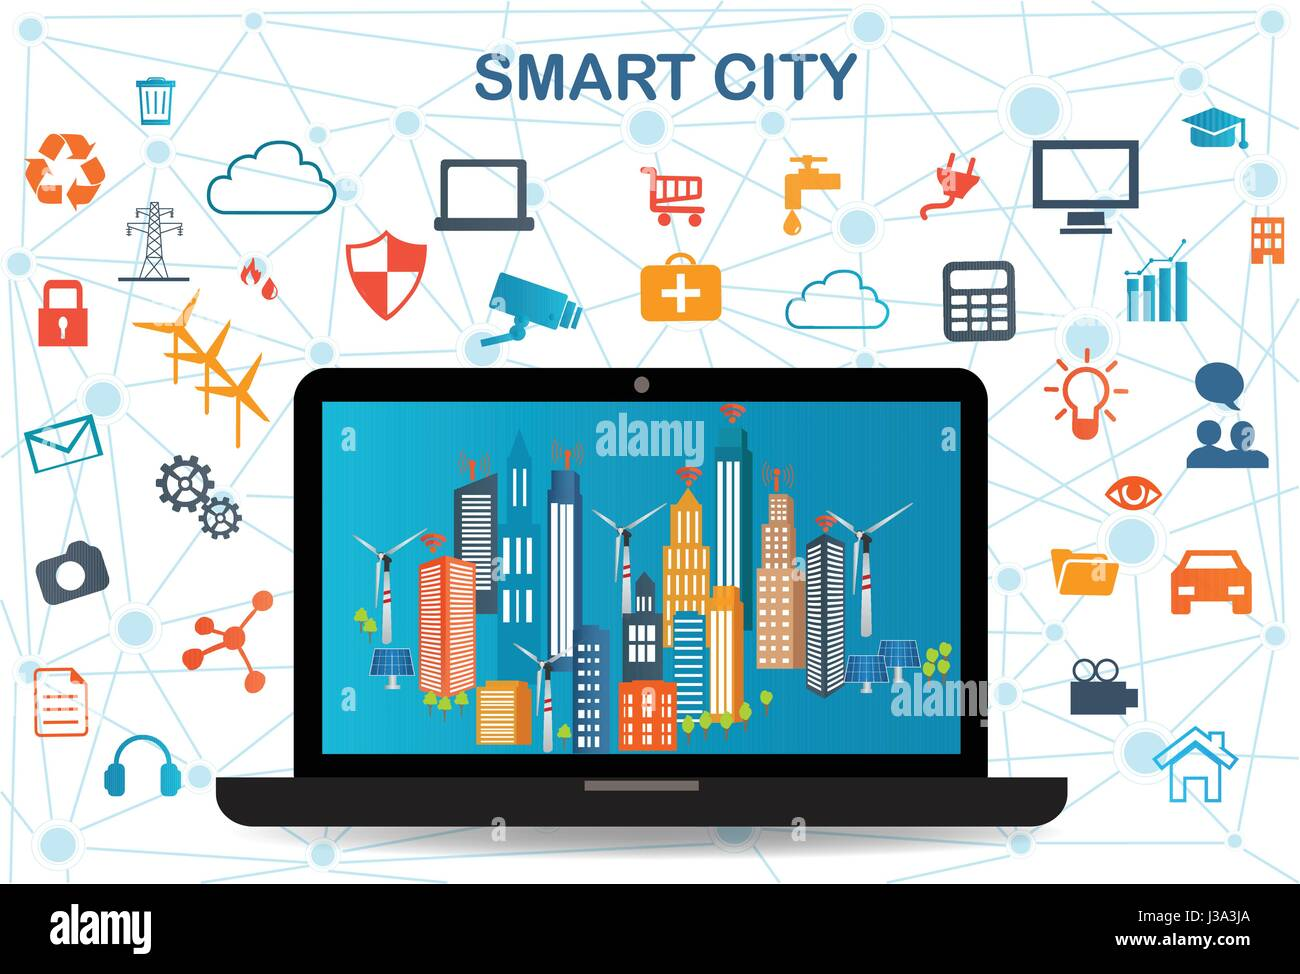 Smart city on laptop with different icon and elements and environmental care.Modern city design with  future technology - Stock Image